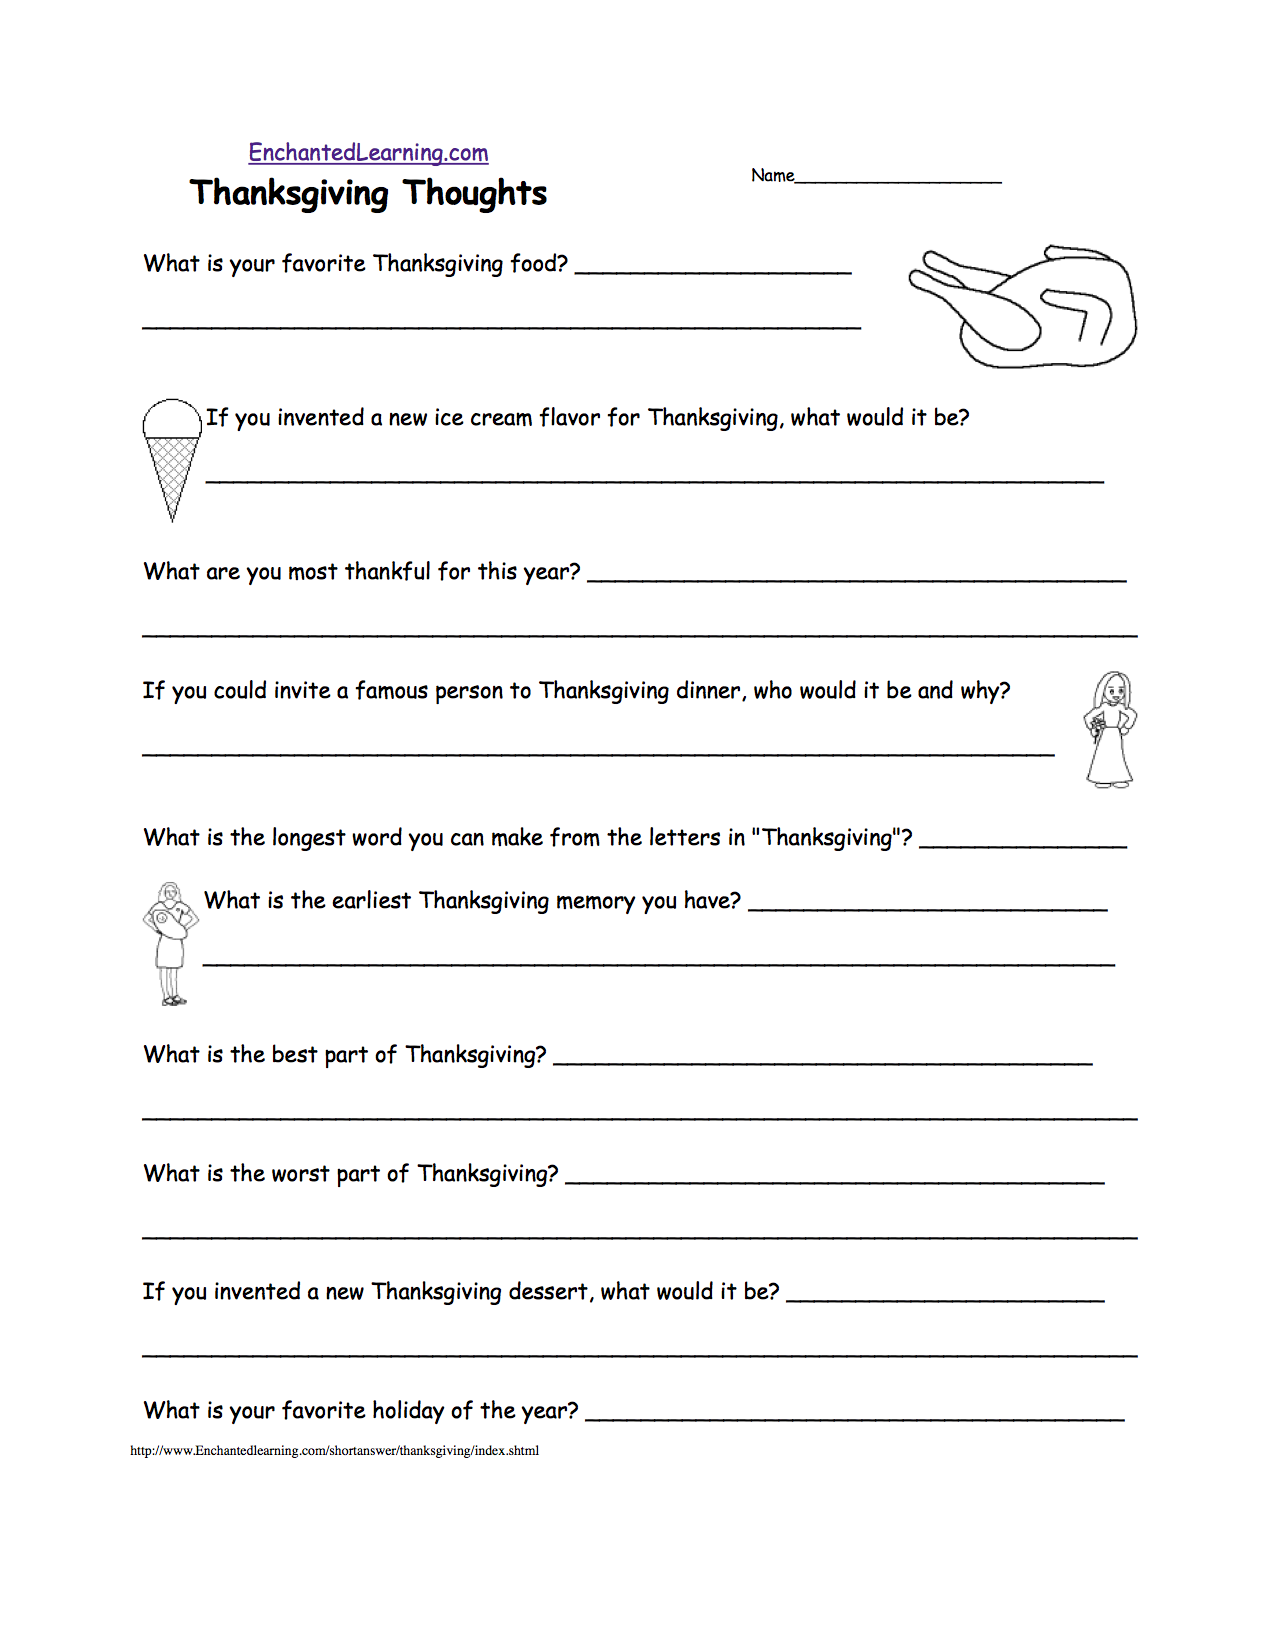 worksheet Middle School Science Worksheets Pdf thanksgiving crafts worksheets and activities thanksgiving